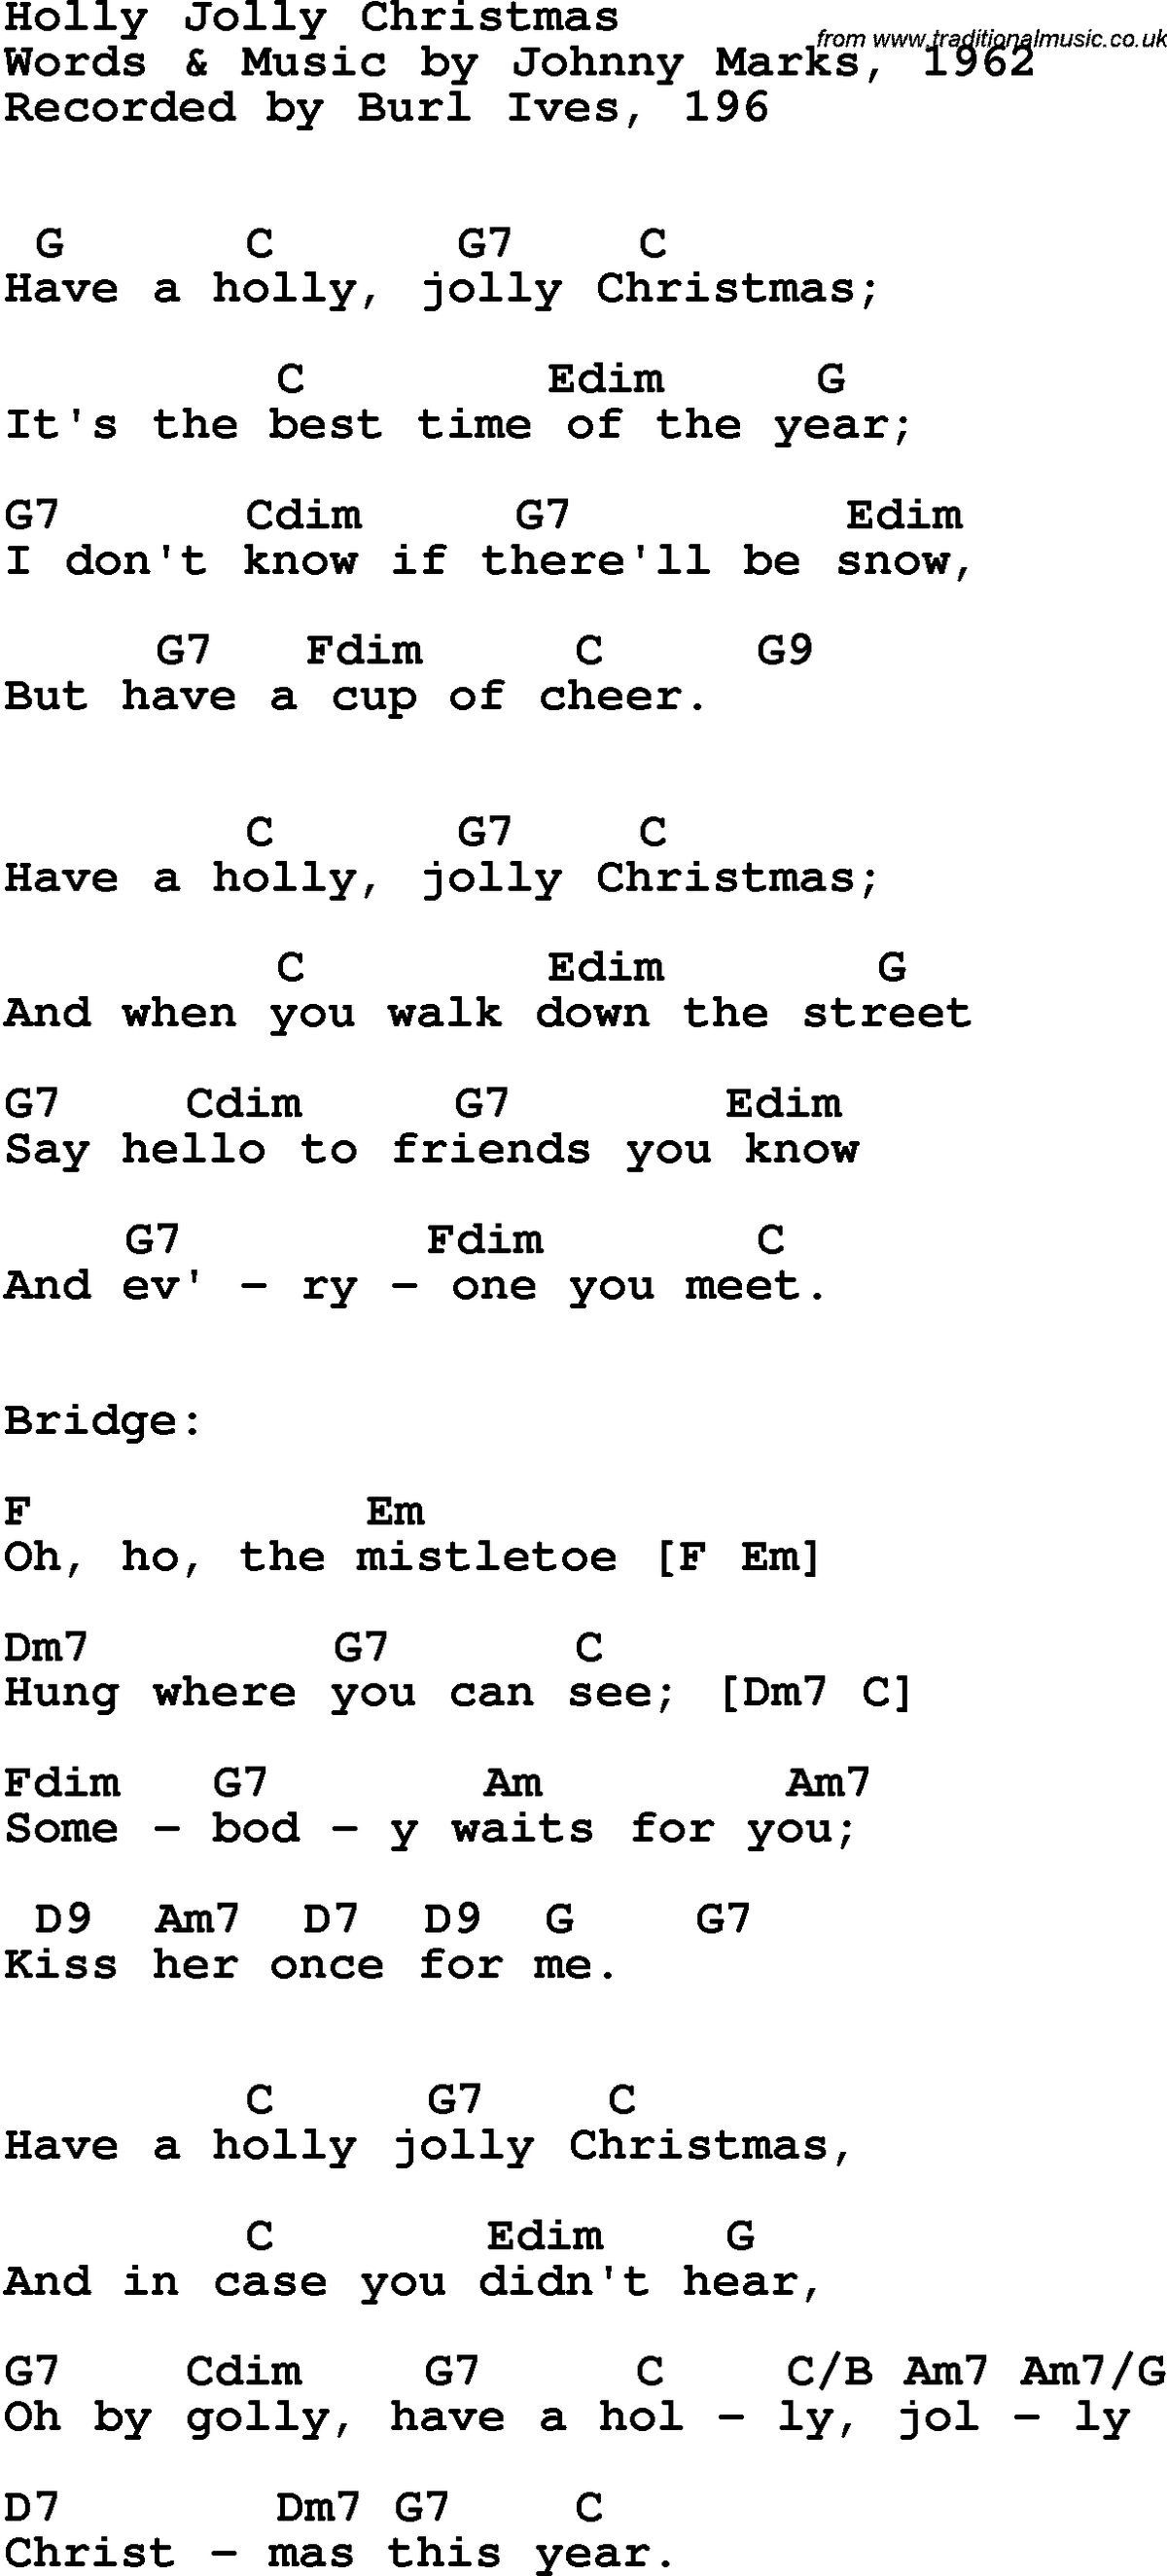 Pin by Patricia Havash on Guitar Song lyrics, chords